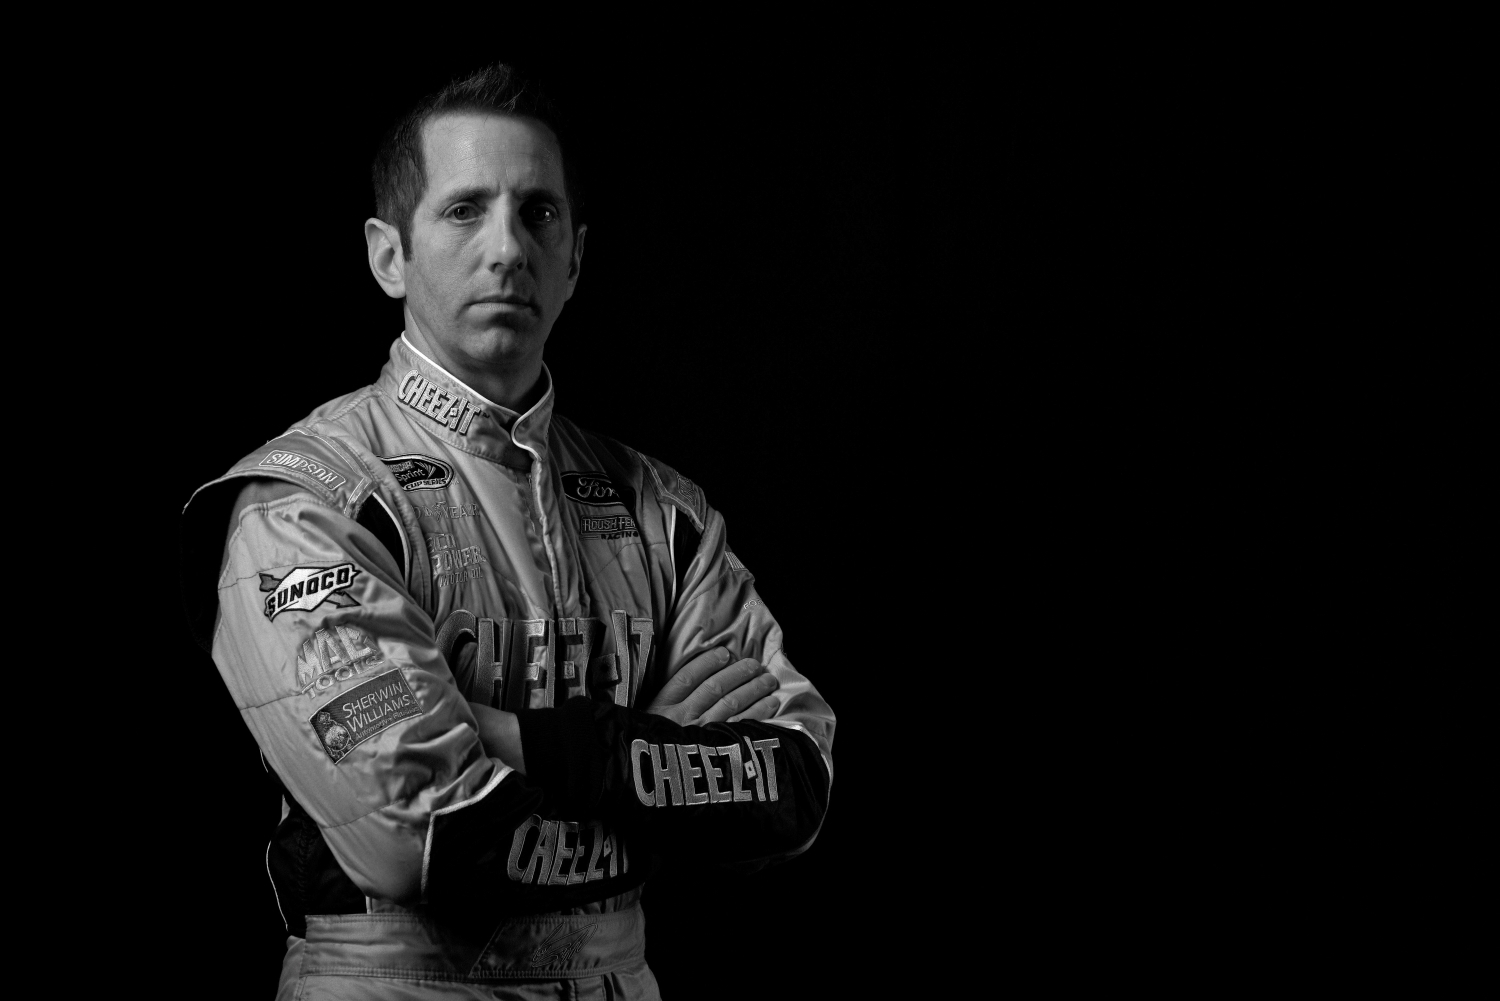 NASCAR Driver Greg Biffle Paid a Hefty $250,001 Price For Secretly Violating His Ex-Wife's Privacy